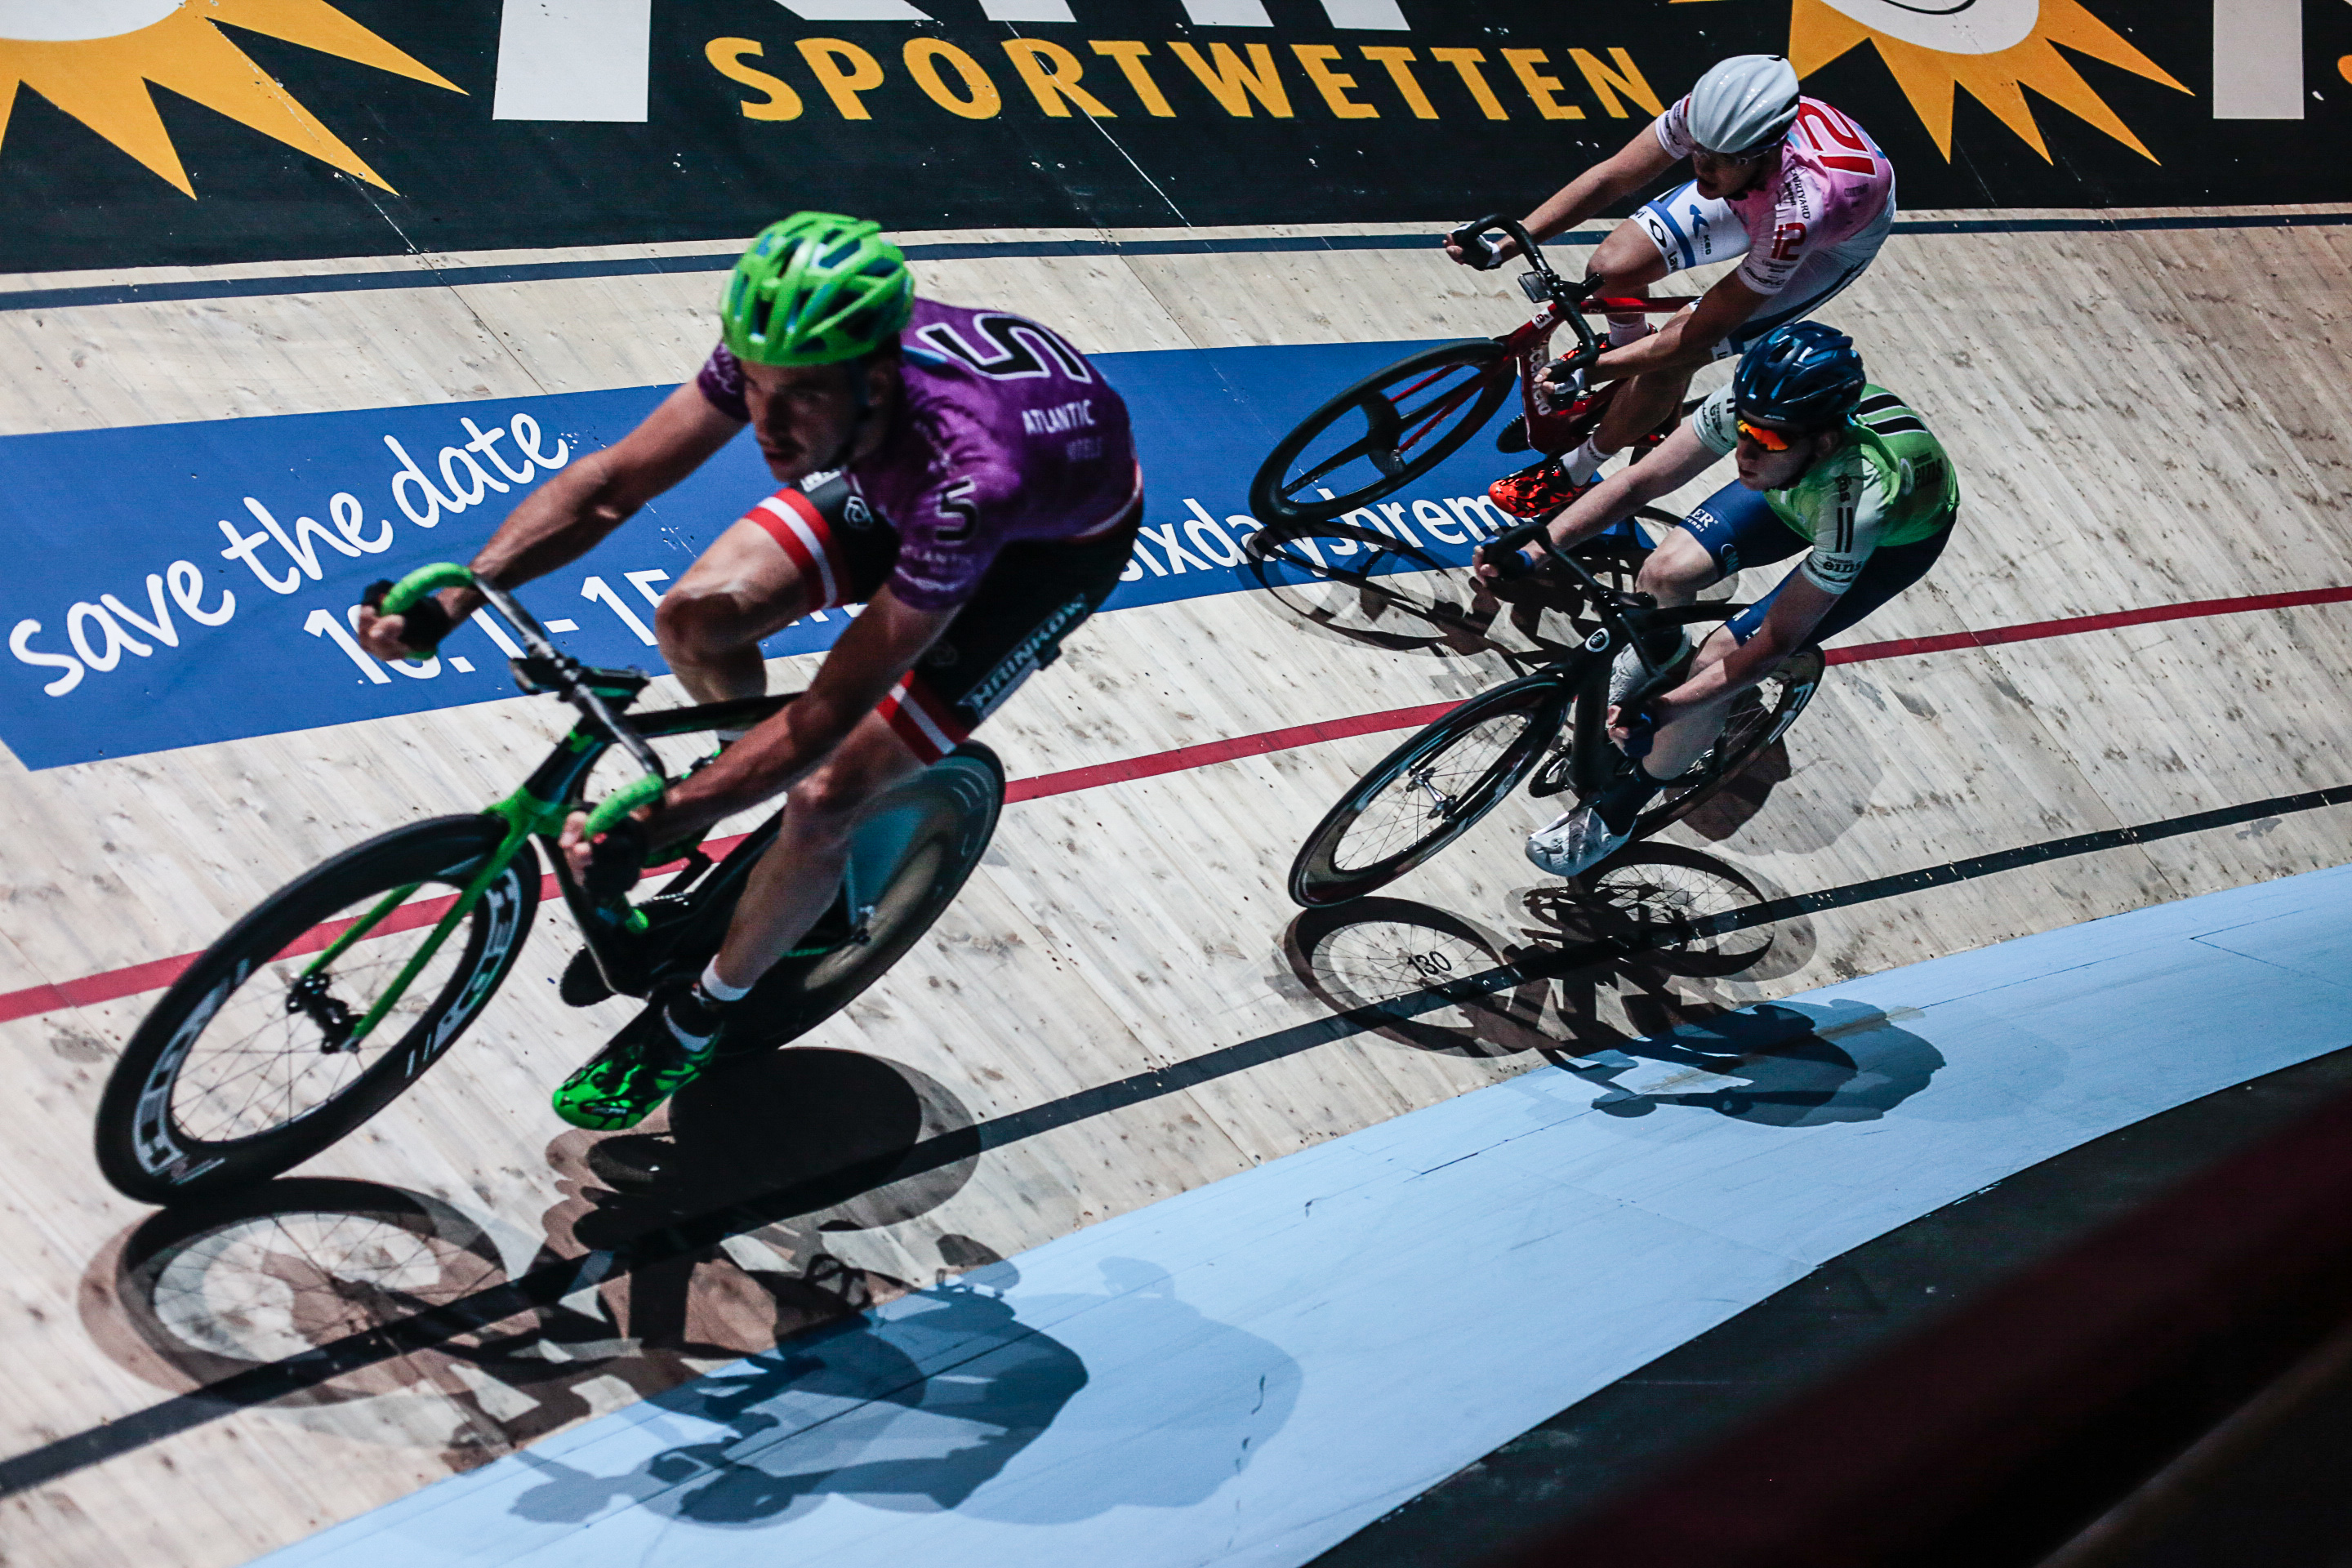 Sixdays in Bremen